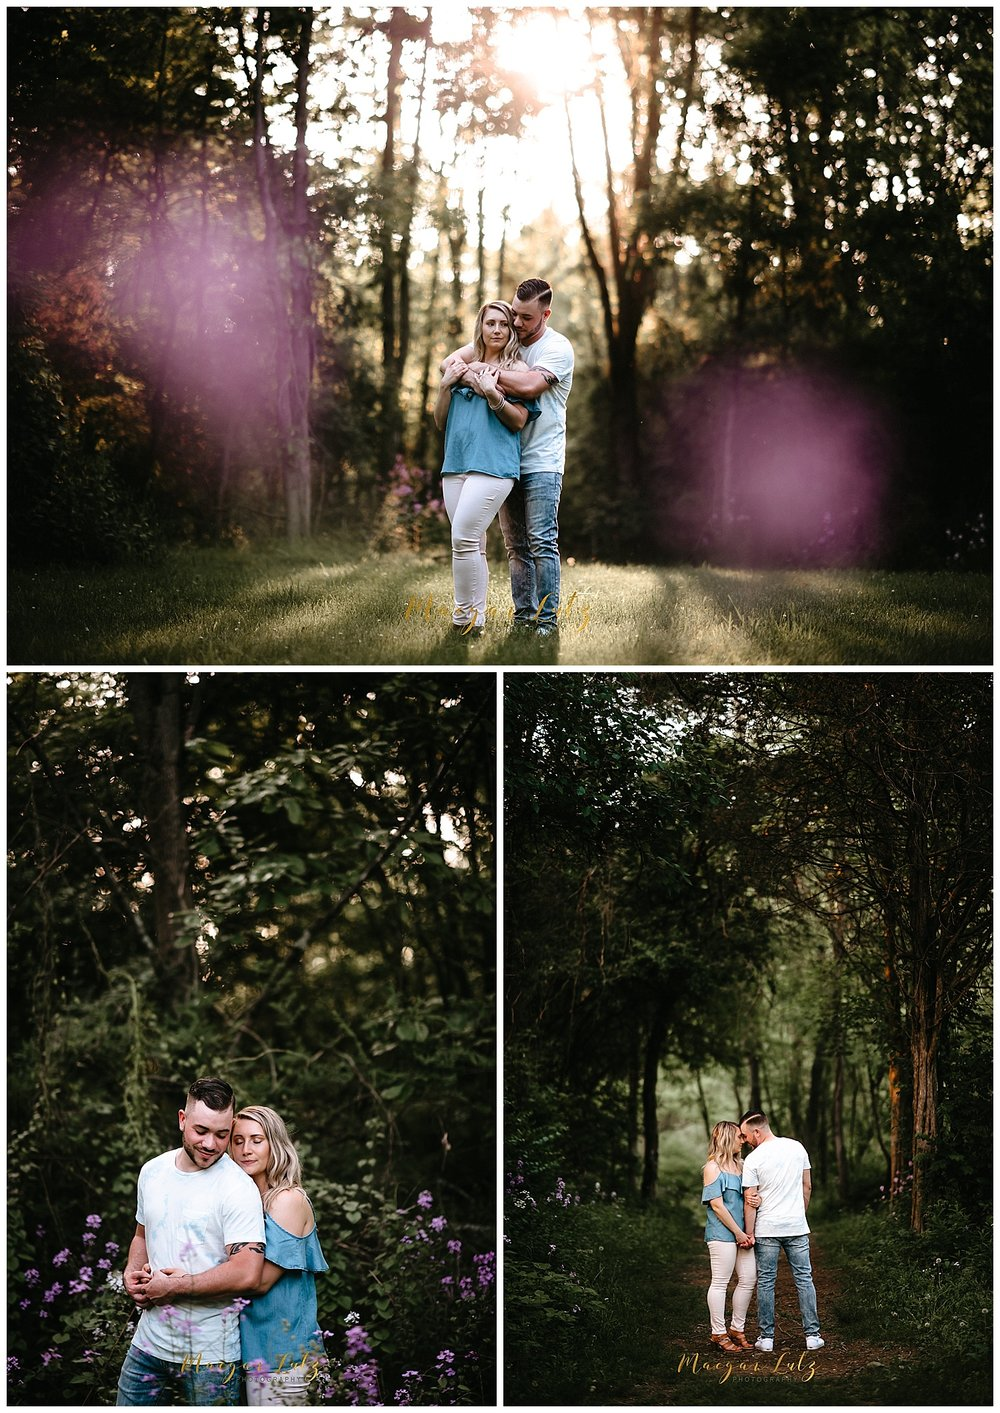 NEPA-wedding-engagement-photographer-Jacobsburg-state-park-Easton-PA_0046.jpg